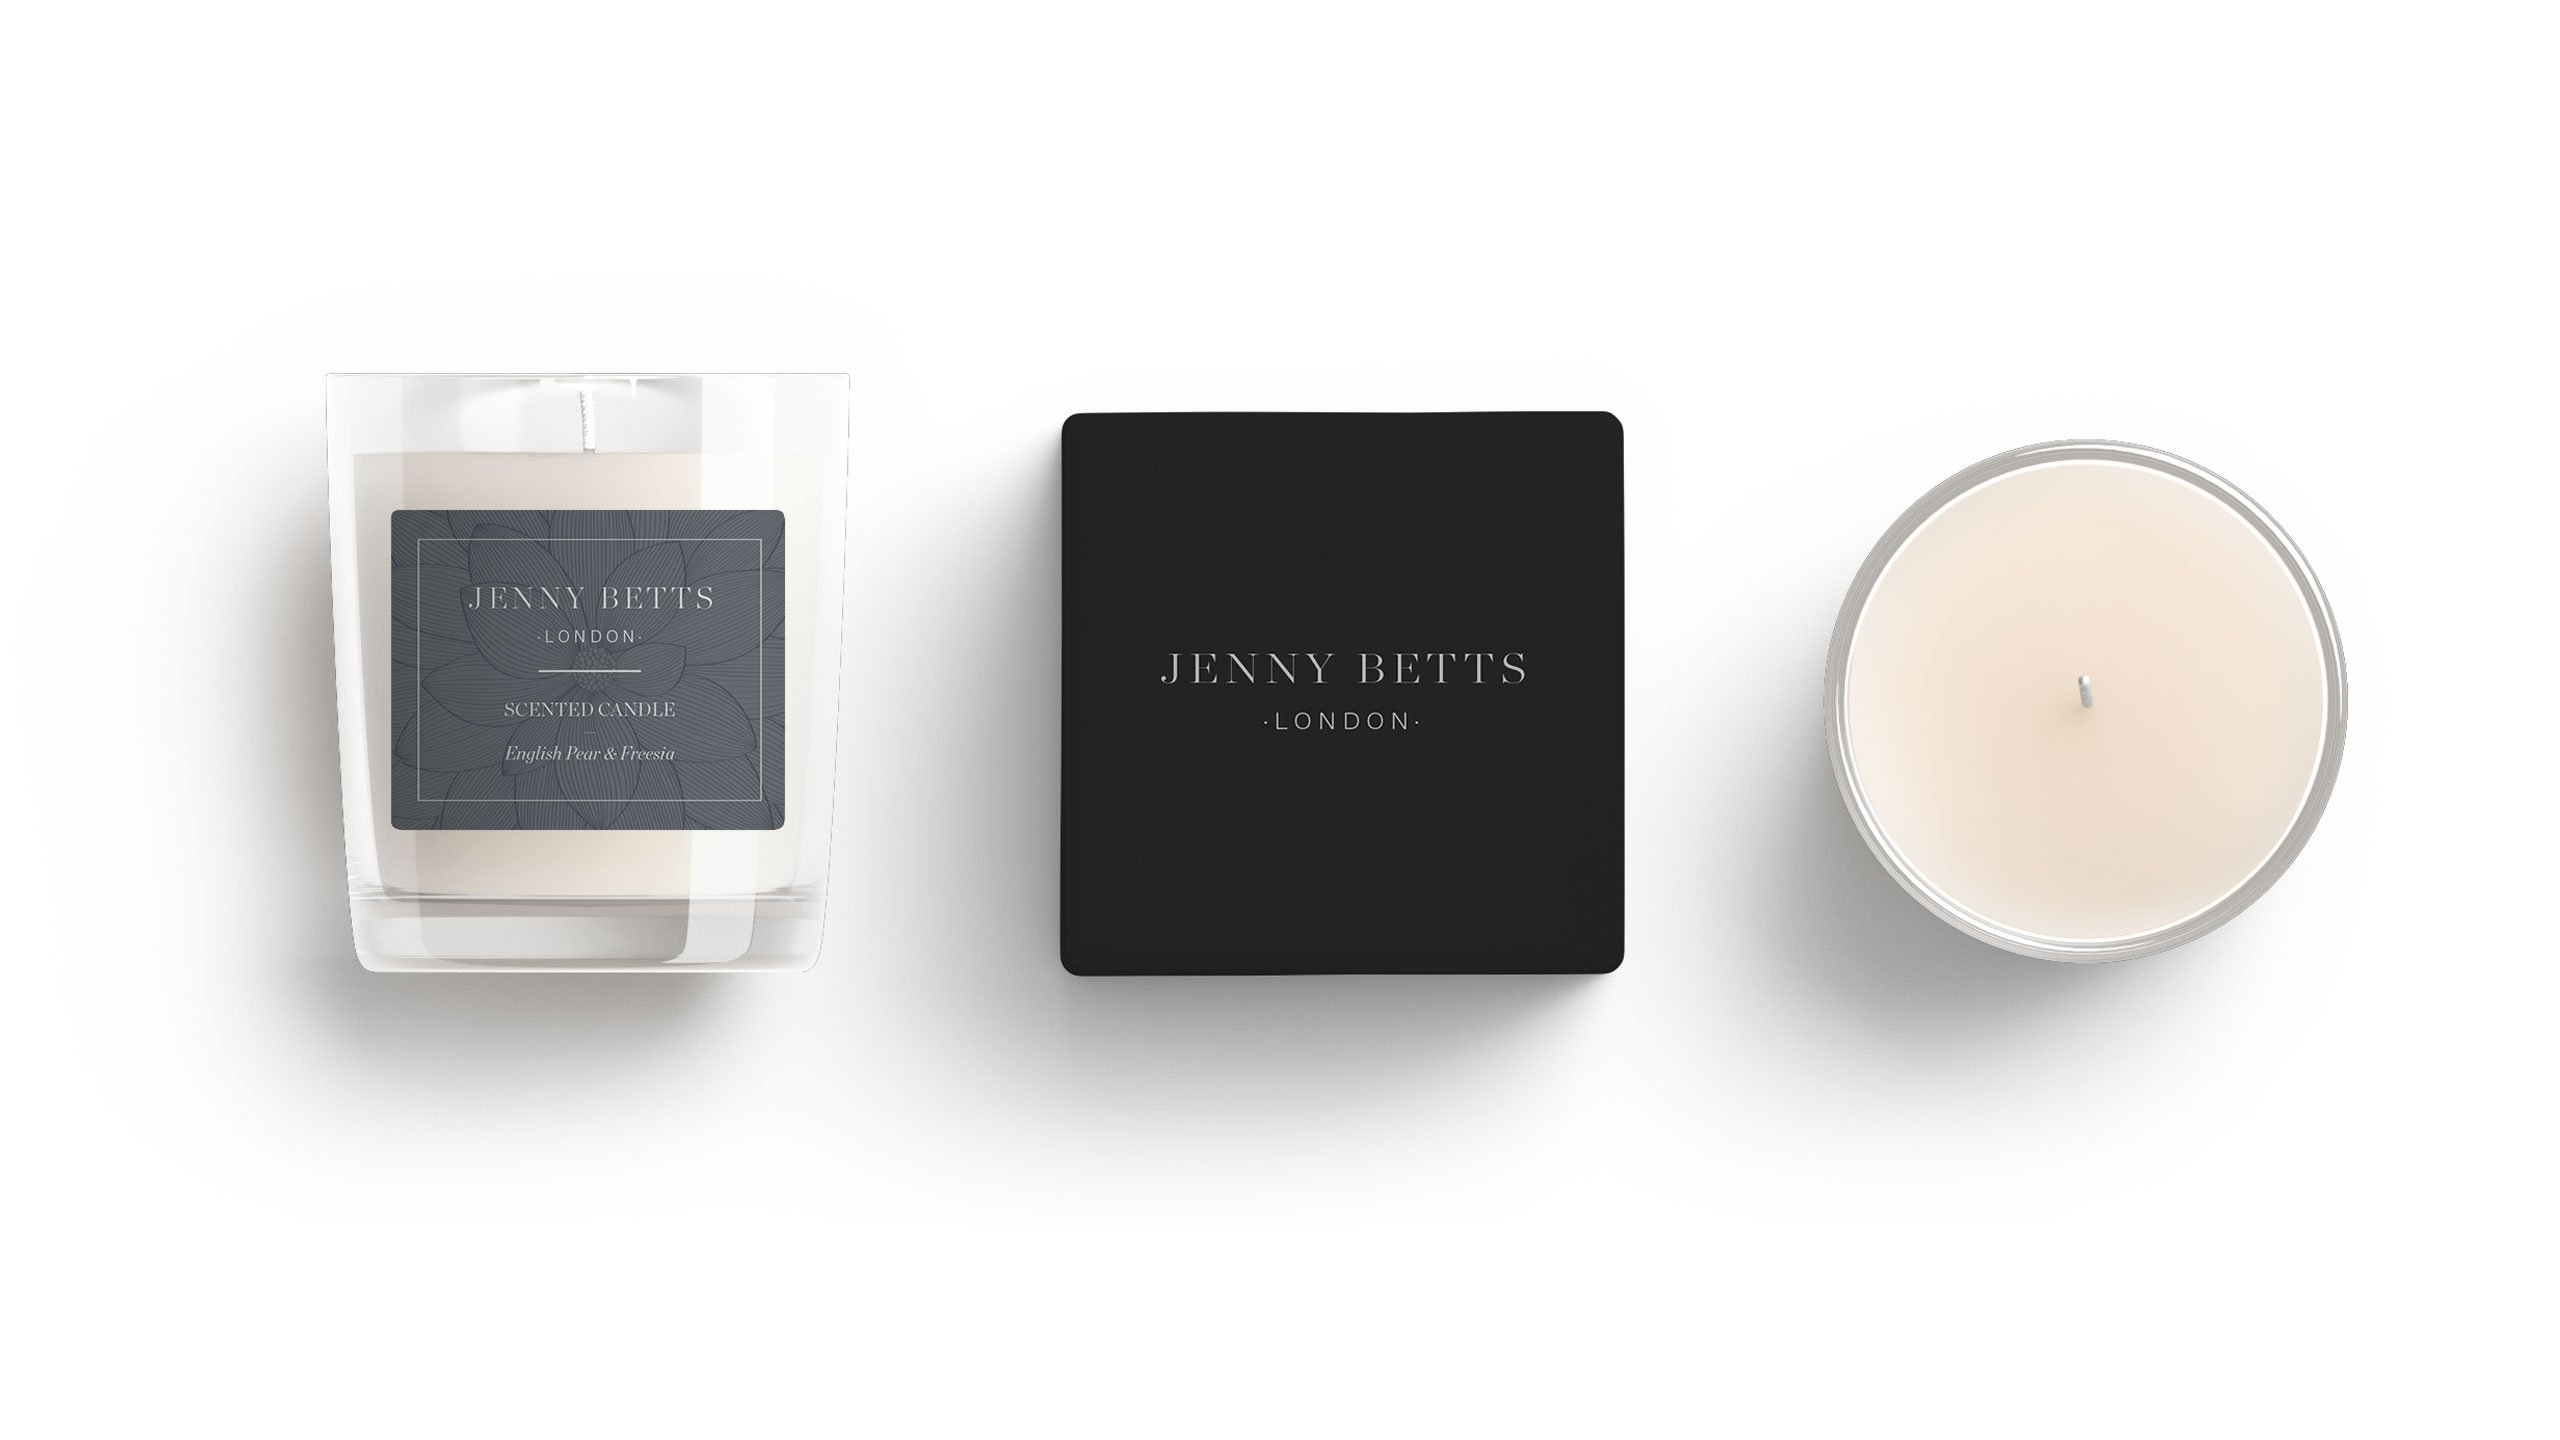 Jenny Betts candle packaging